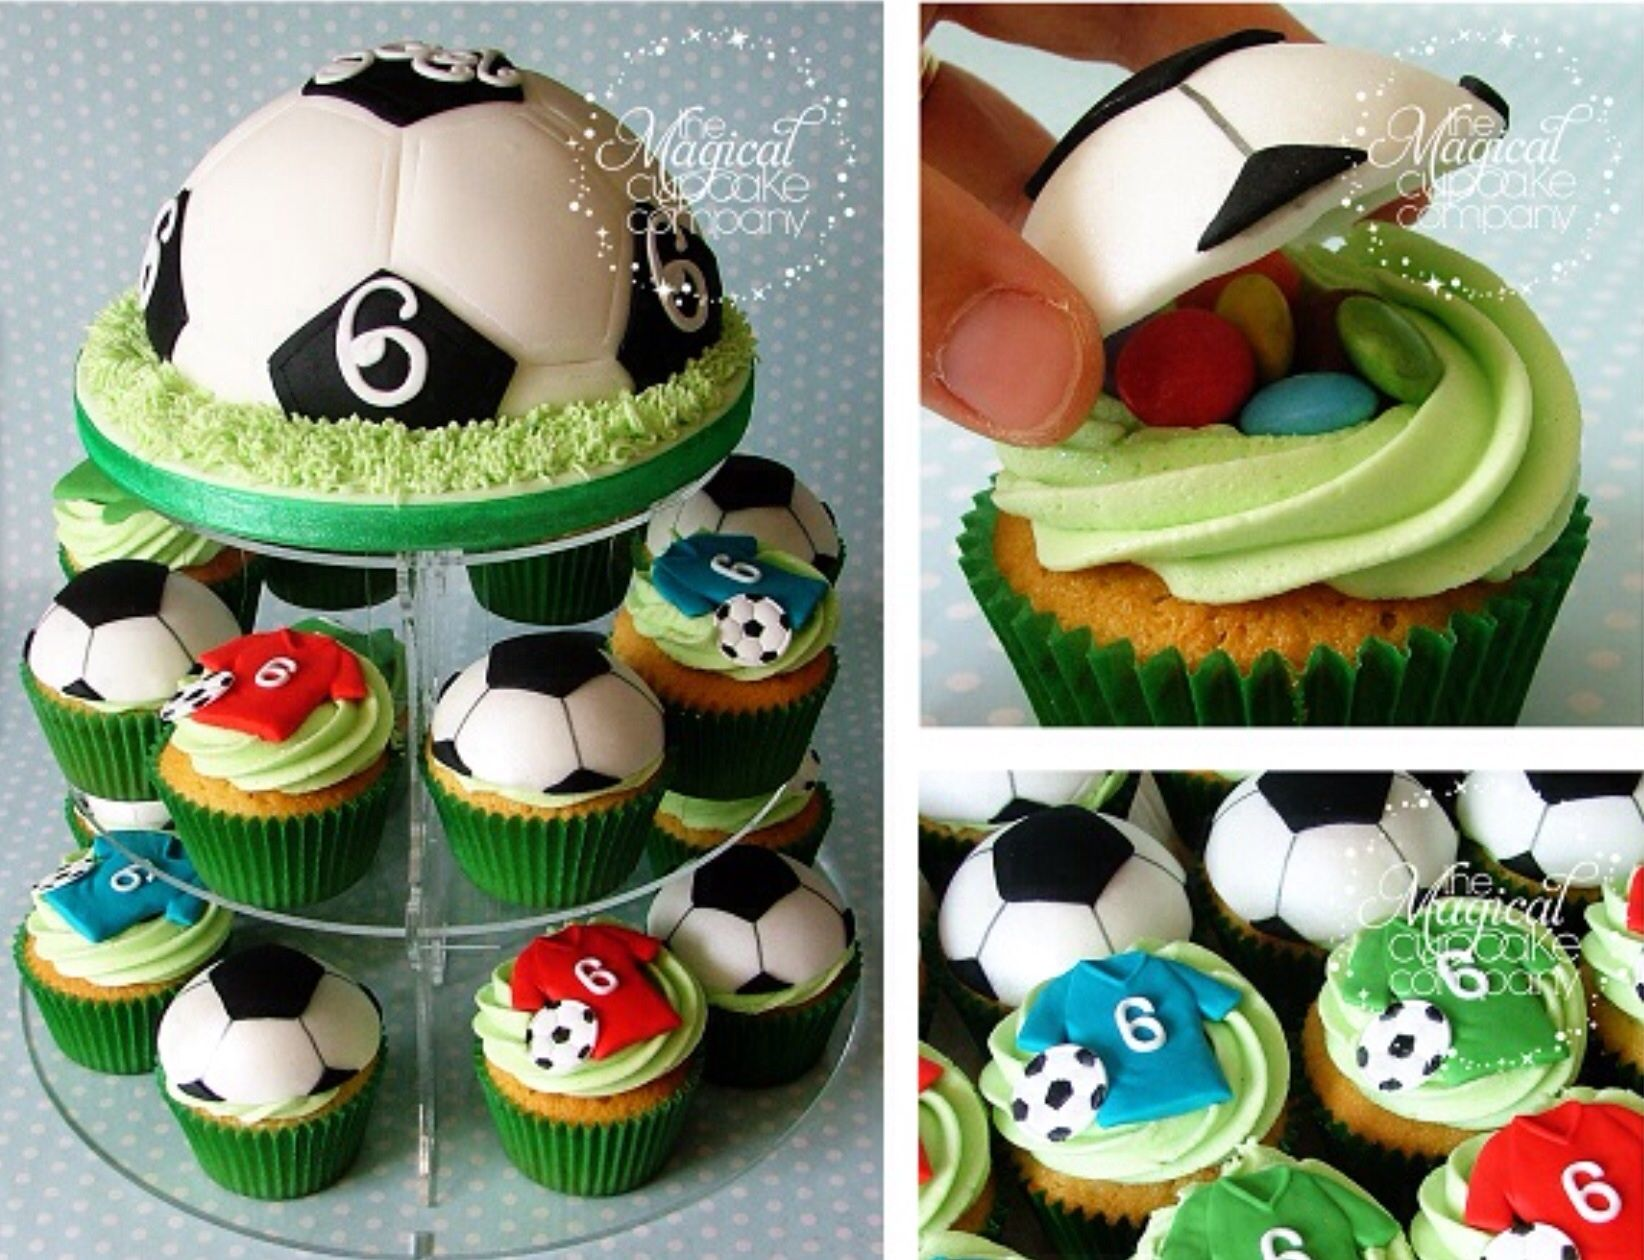 Score Big With These World Cup Themed Cakes And Cupcakes Cupcake Cakes Soccer Cake Soccer Cupcakes